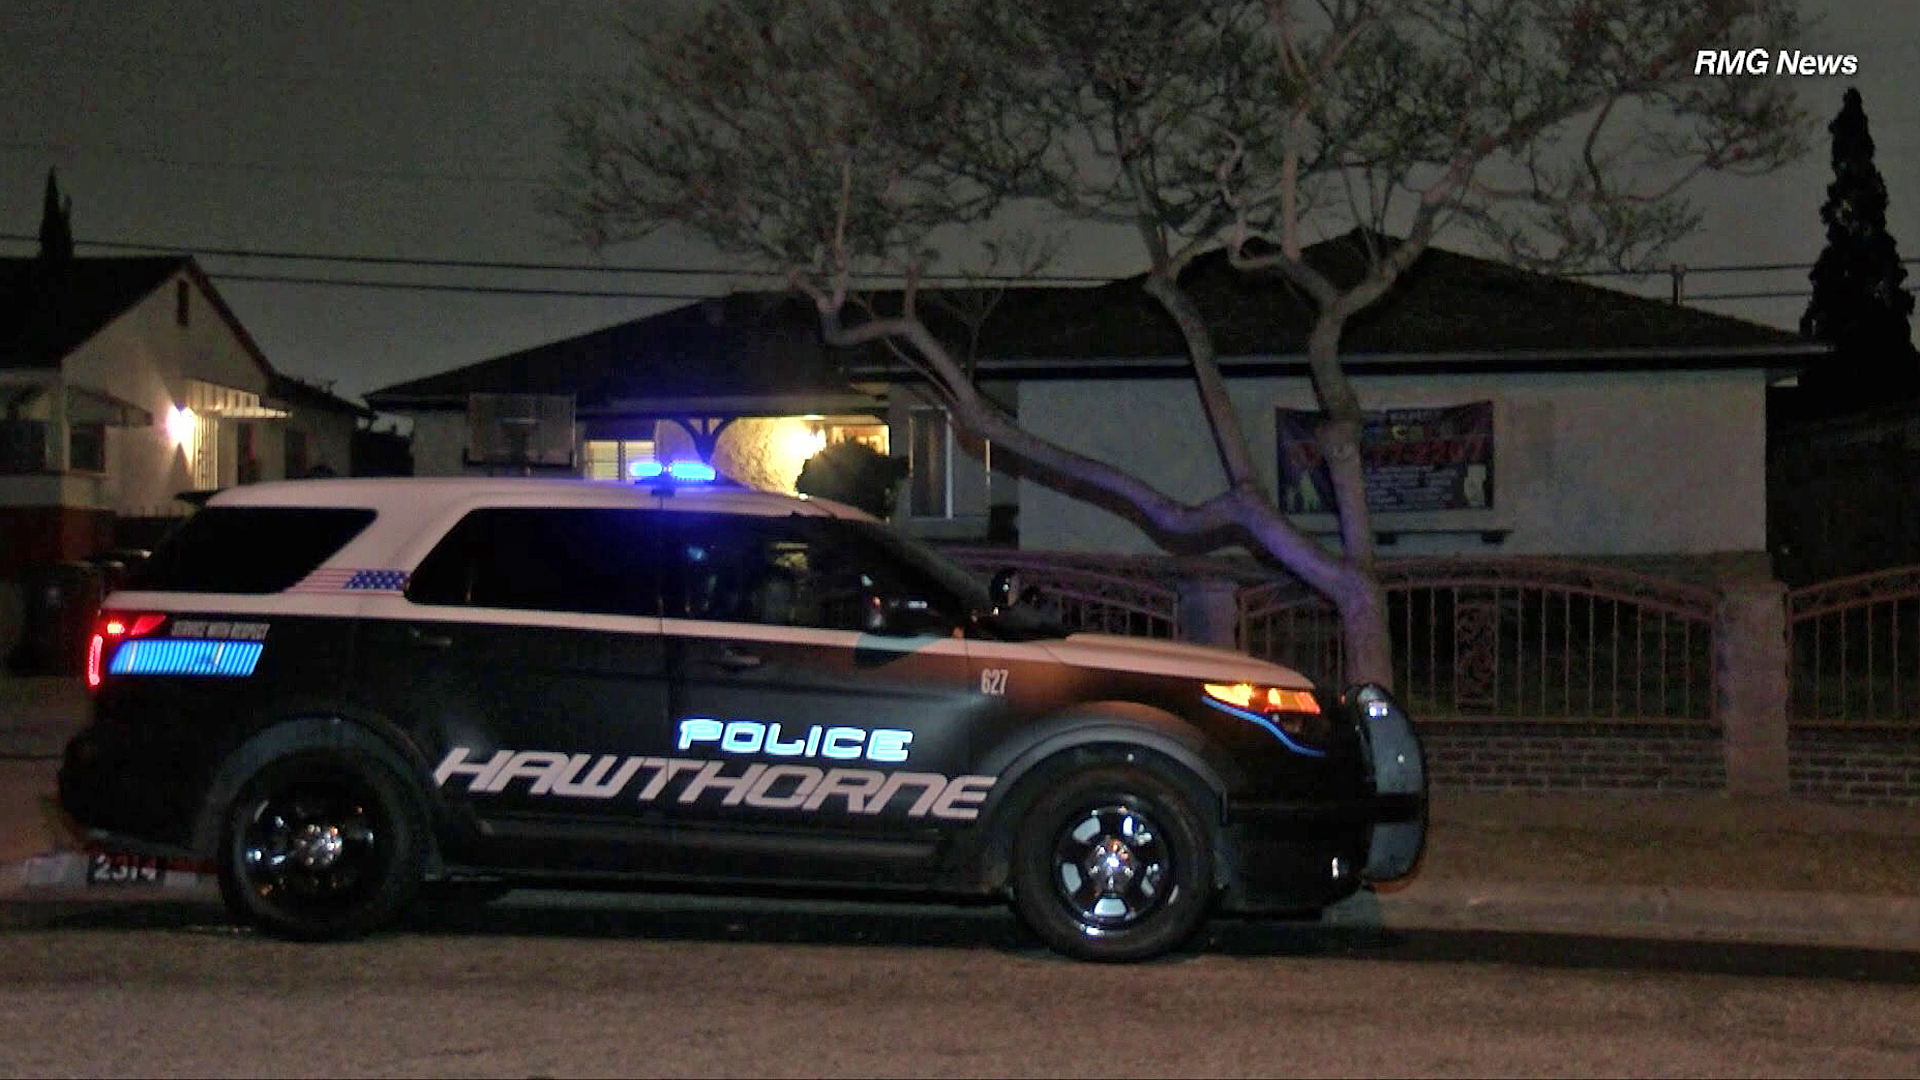 Police investigate the death of a baby in Hawthorne on April 24, 2019. (Credit: RMG News)